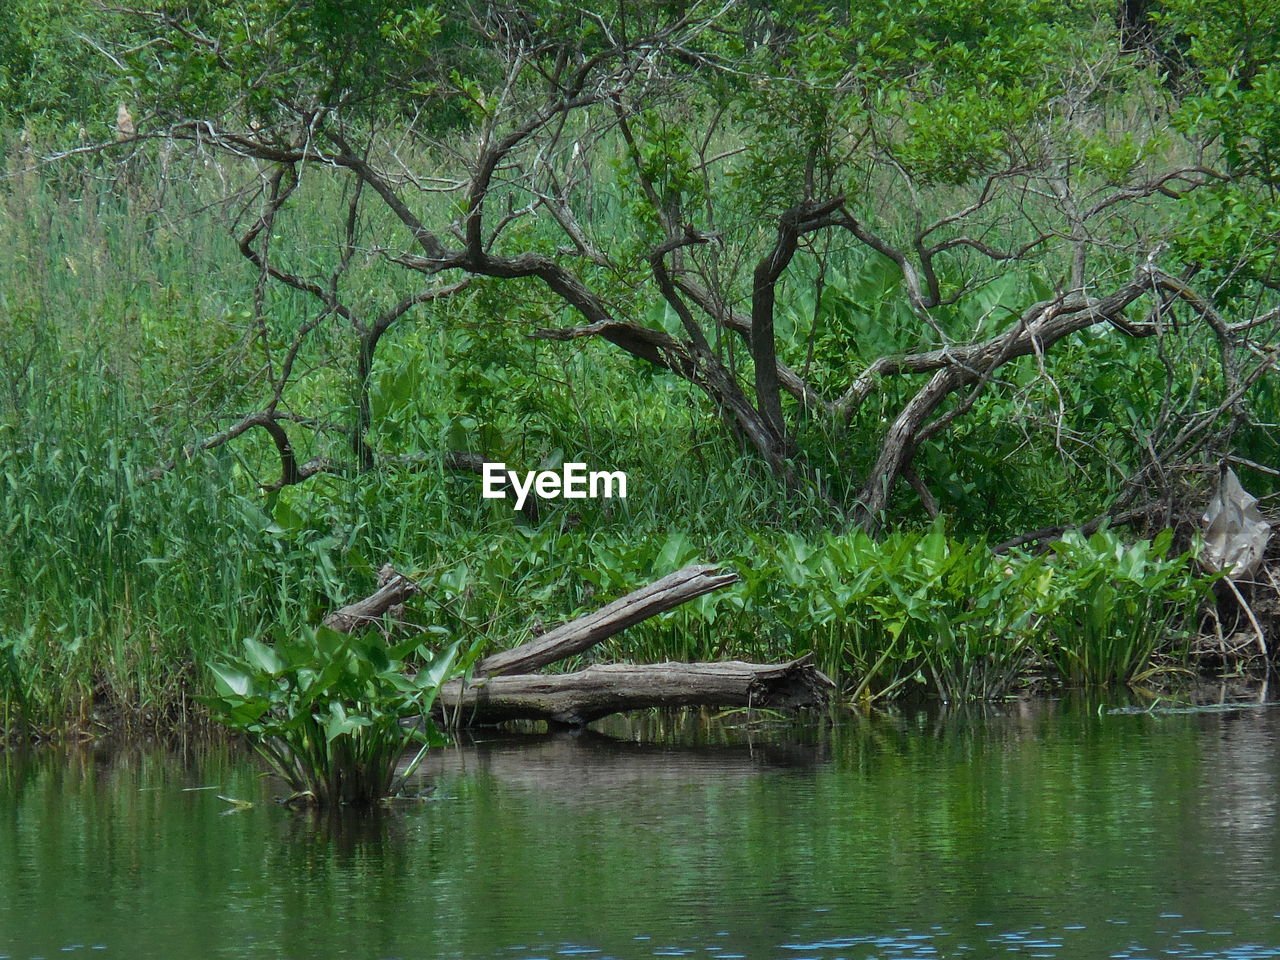 plant, tree, water, nature, animals in the wild, animal wildlife, animal themes, green color, no people, animal, lake, day, tranquility, forest, waterfront, vertebrate, one animal, bird, branch, outdoors